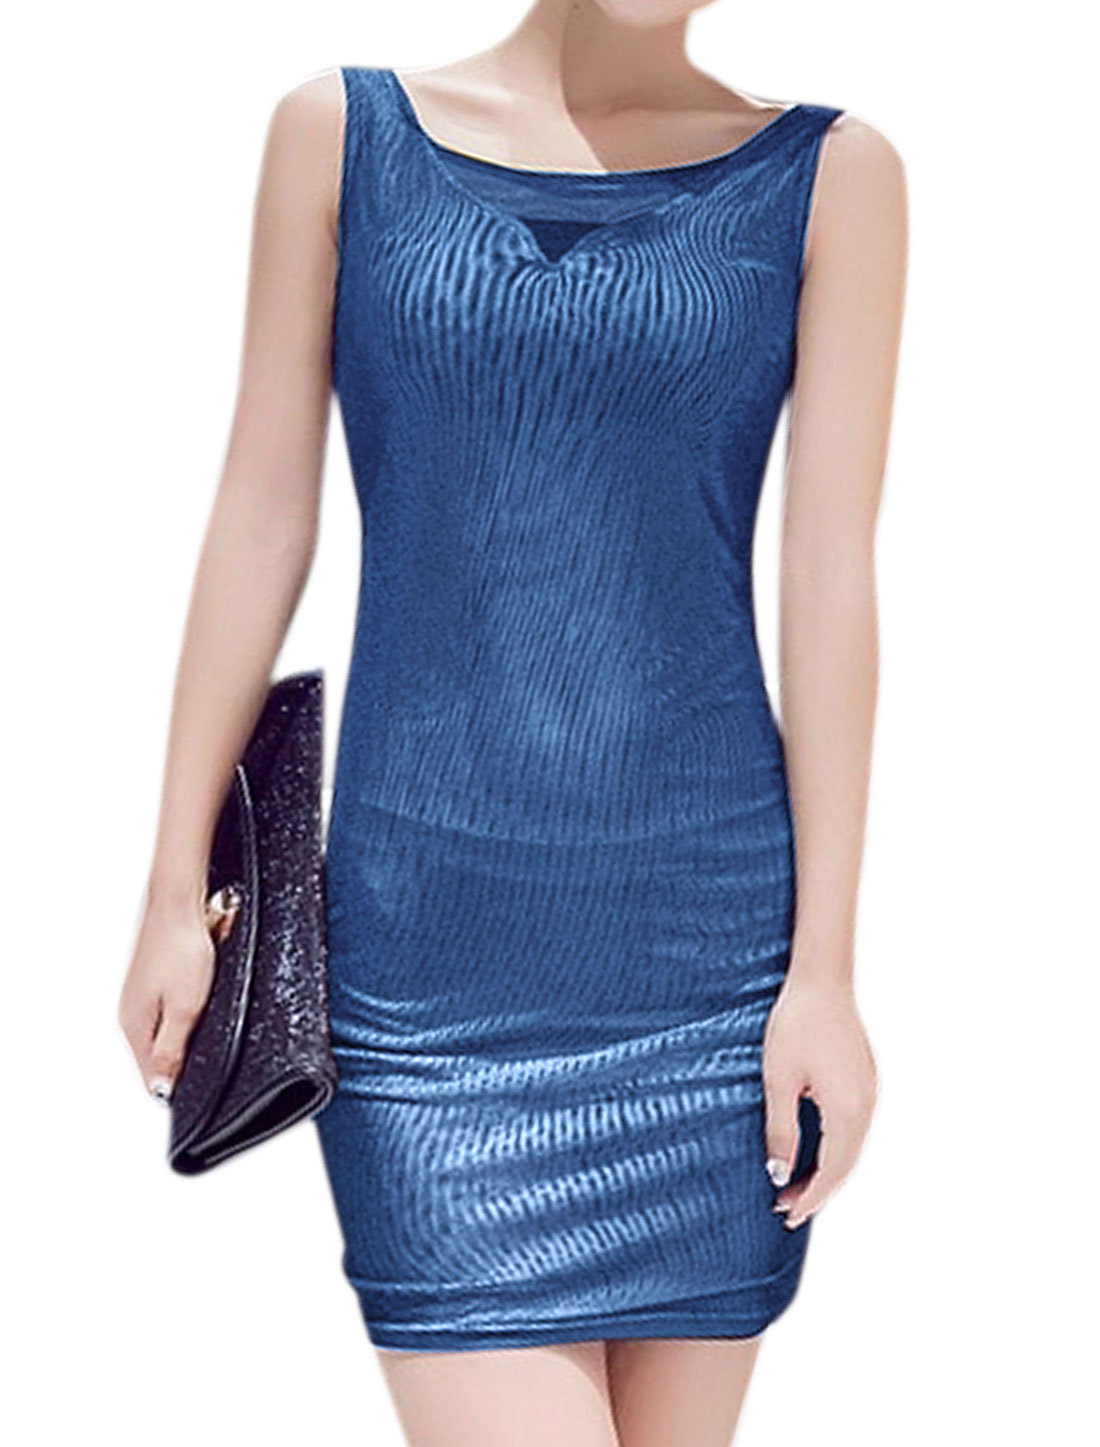 Women Sleeveless Stretchy Mesh Mini Wrap Dress Blue XS